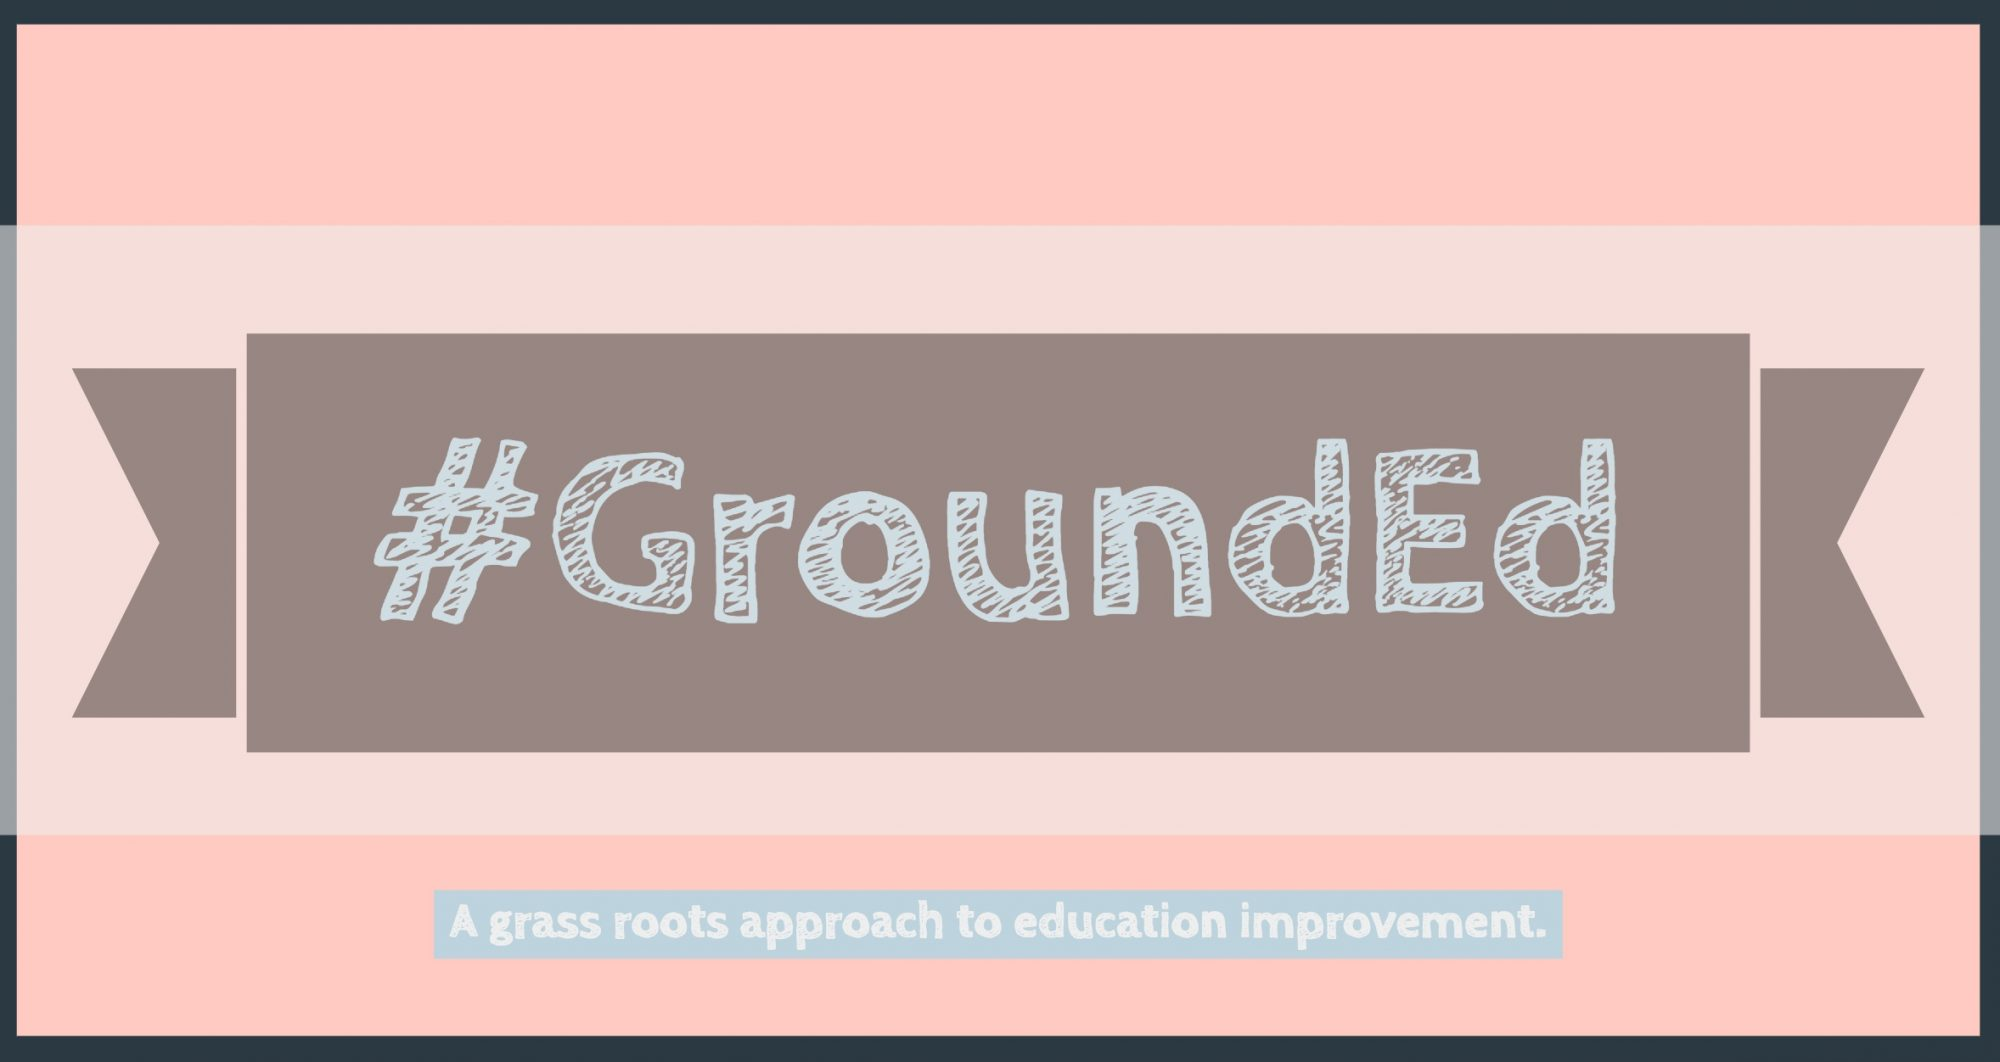 #GroundEd